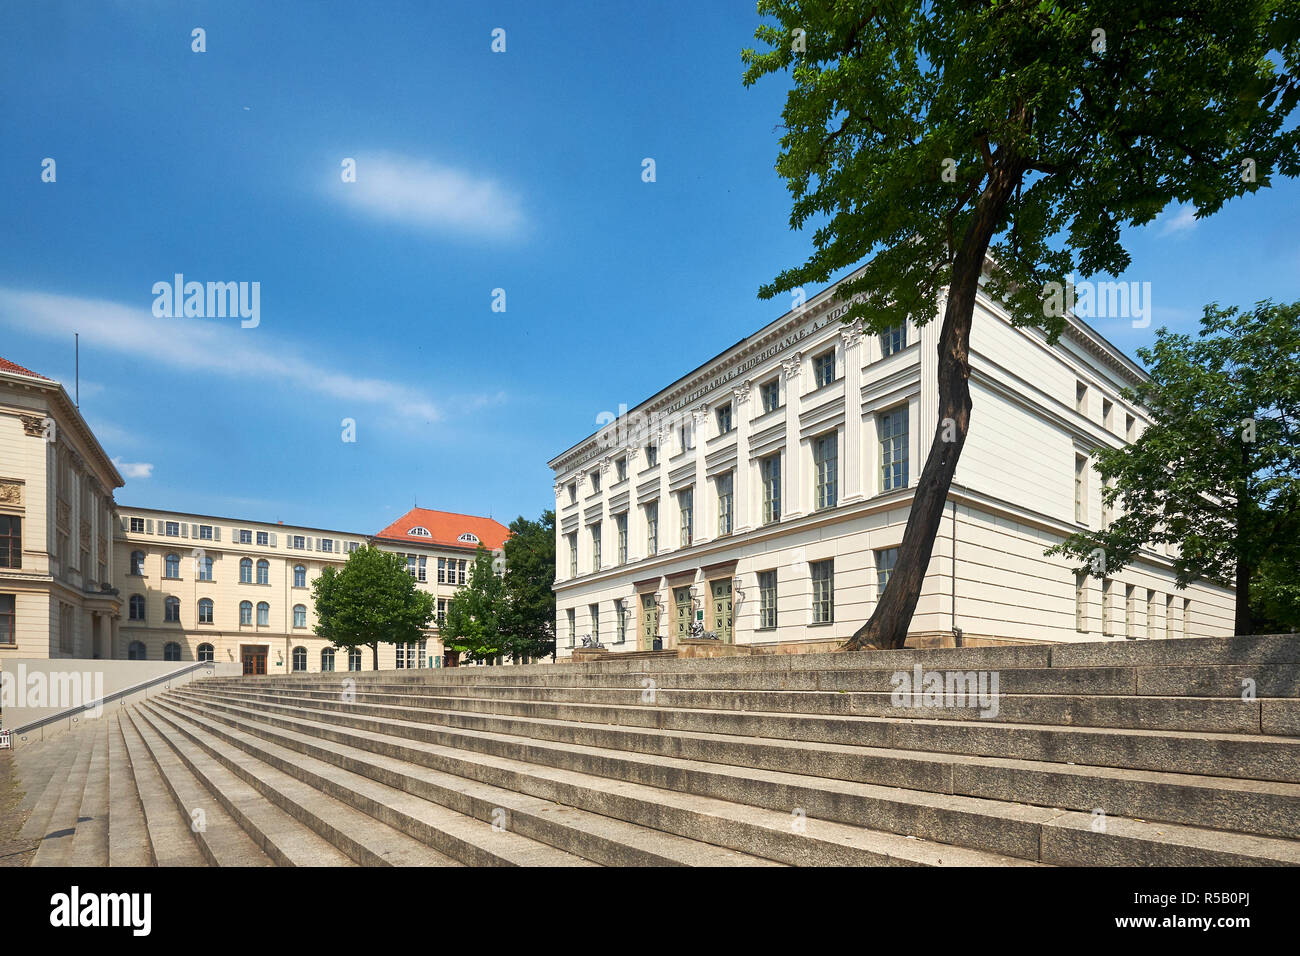 University Square of Martin Luther University Halle-Wittenberg in Halle / Saale, Saxony-Anhalt, Germany Stock Photo